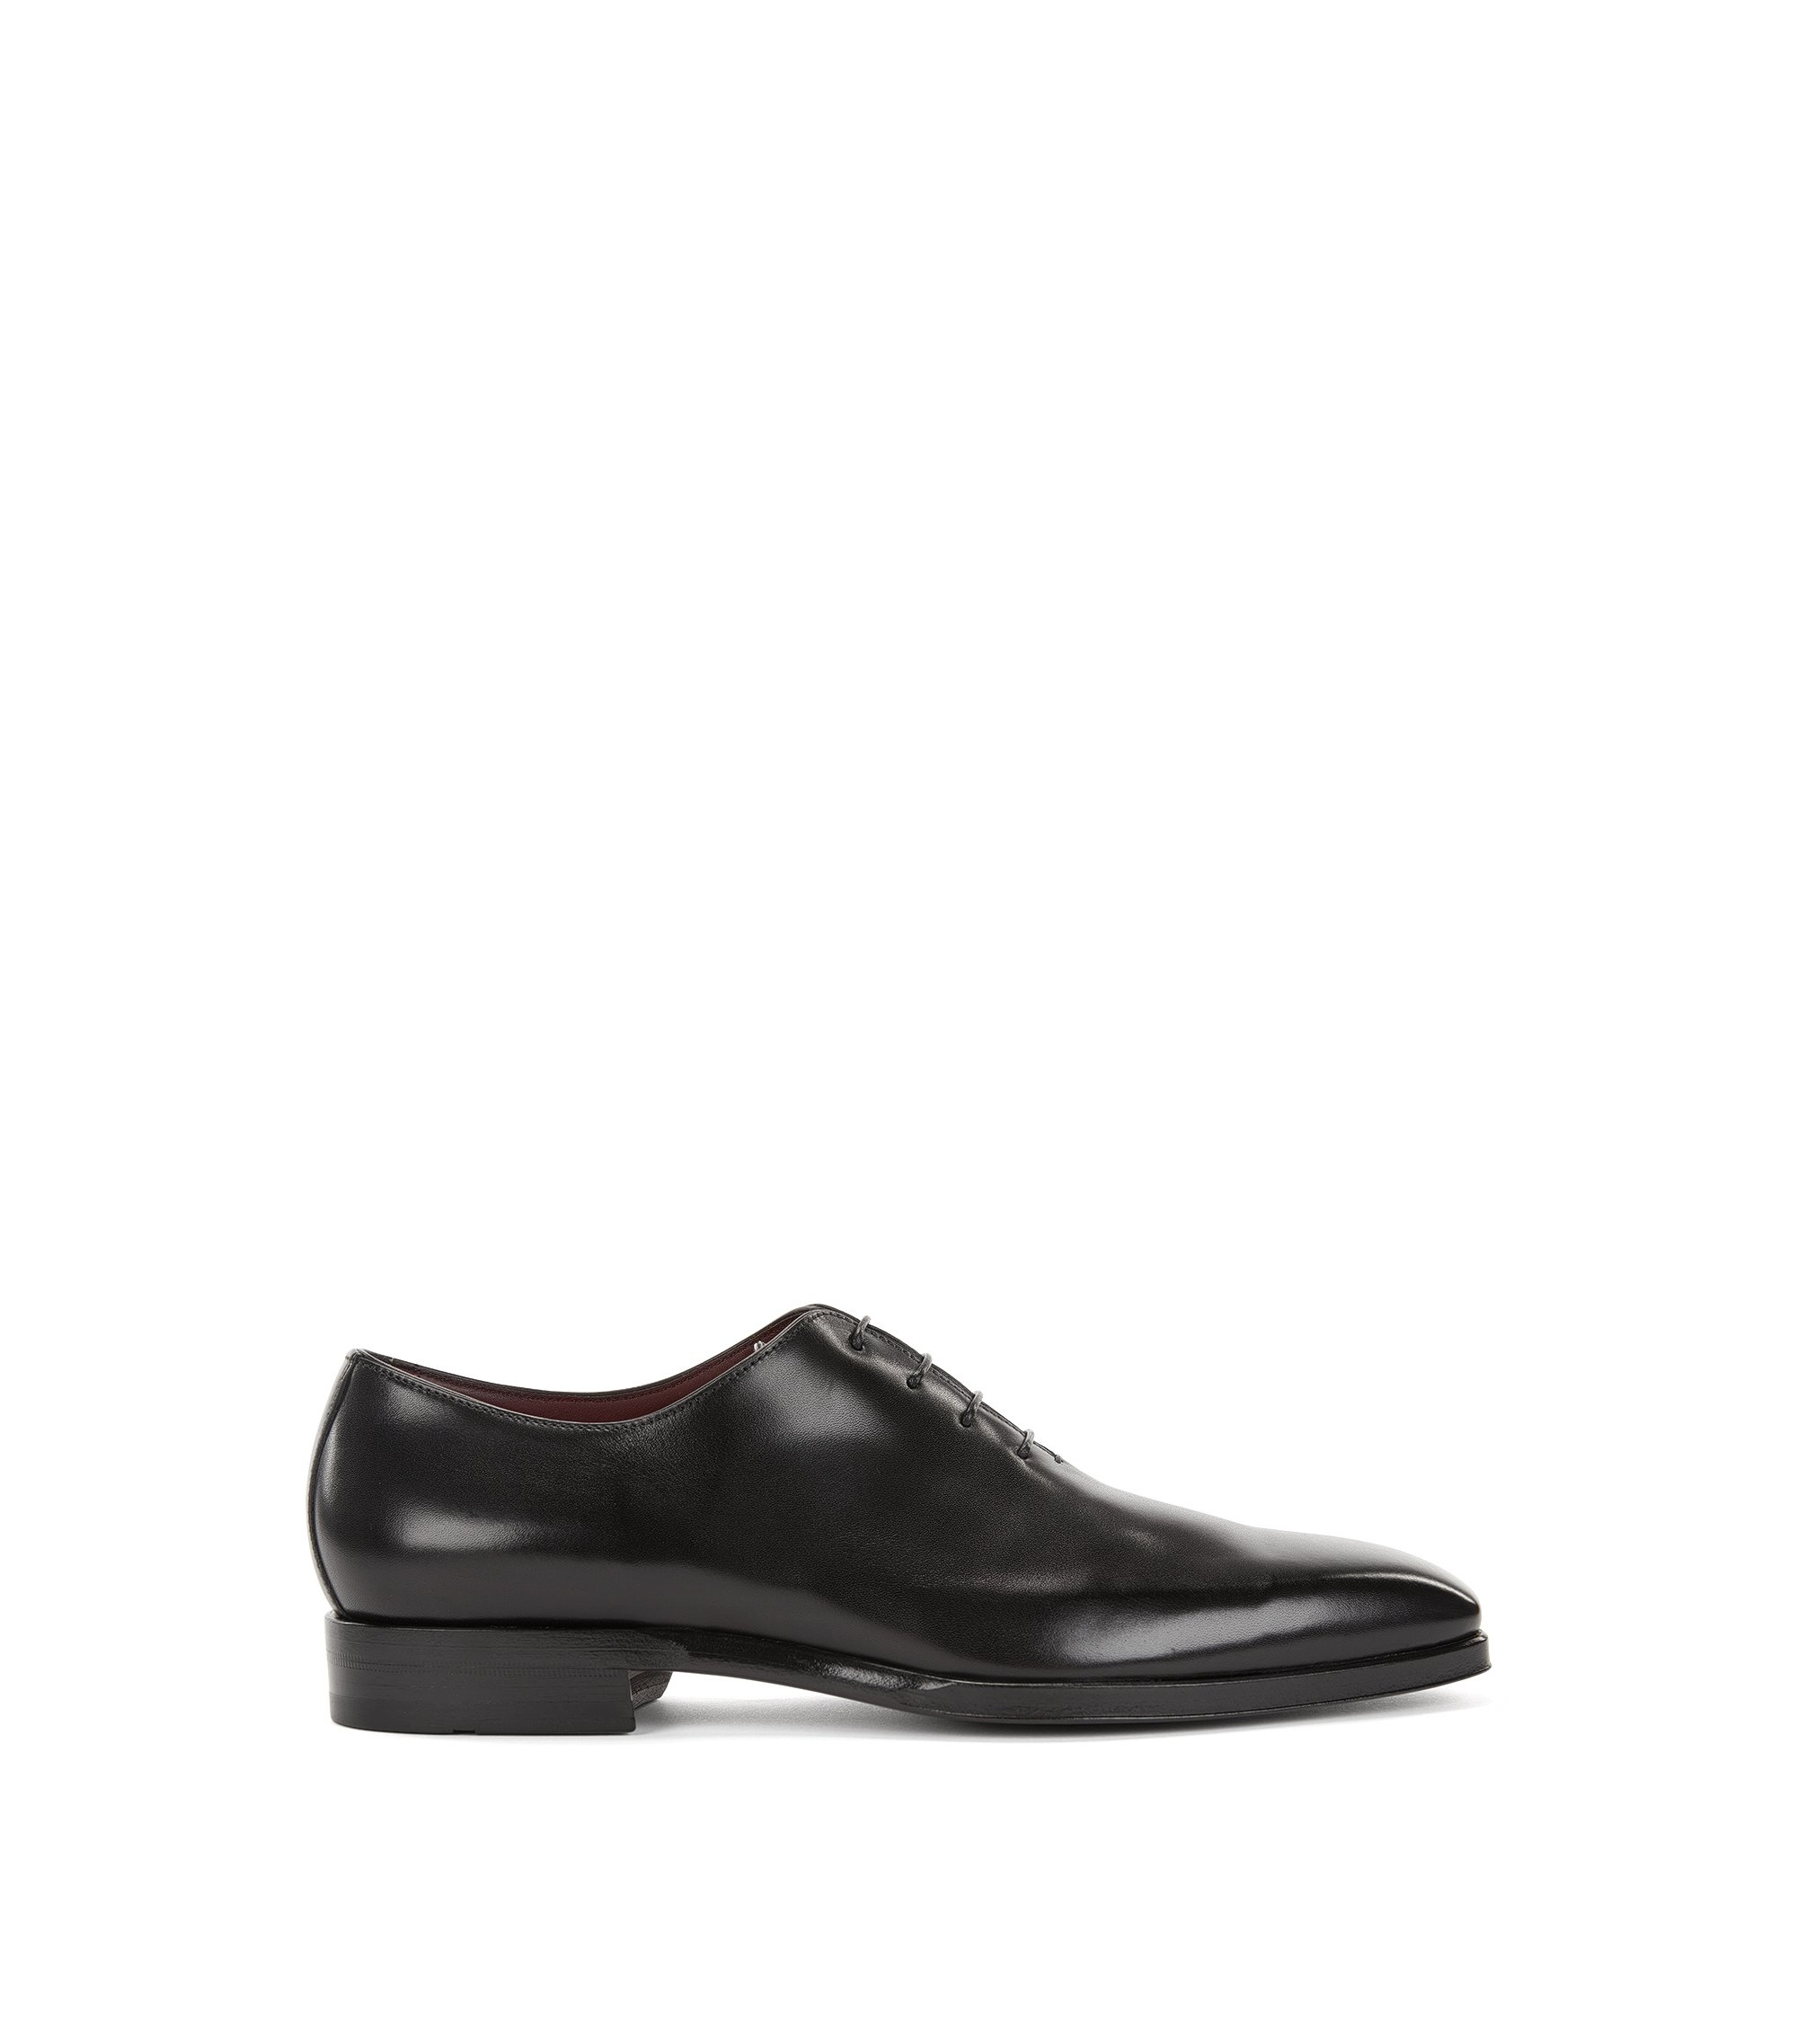 Scarpe Oxford in pelle brunita, Nero